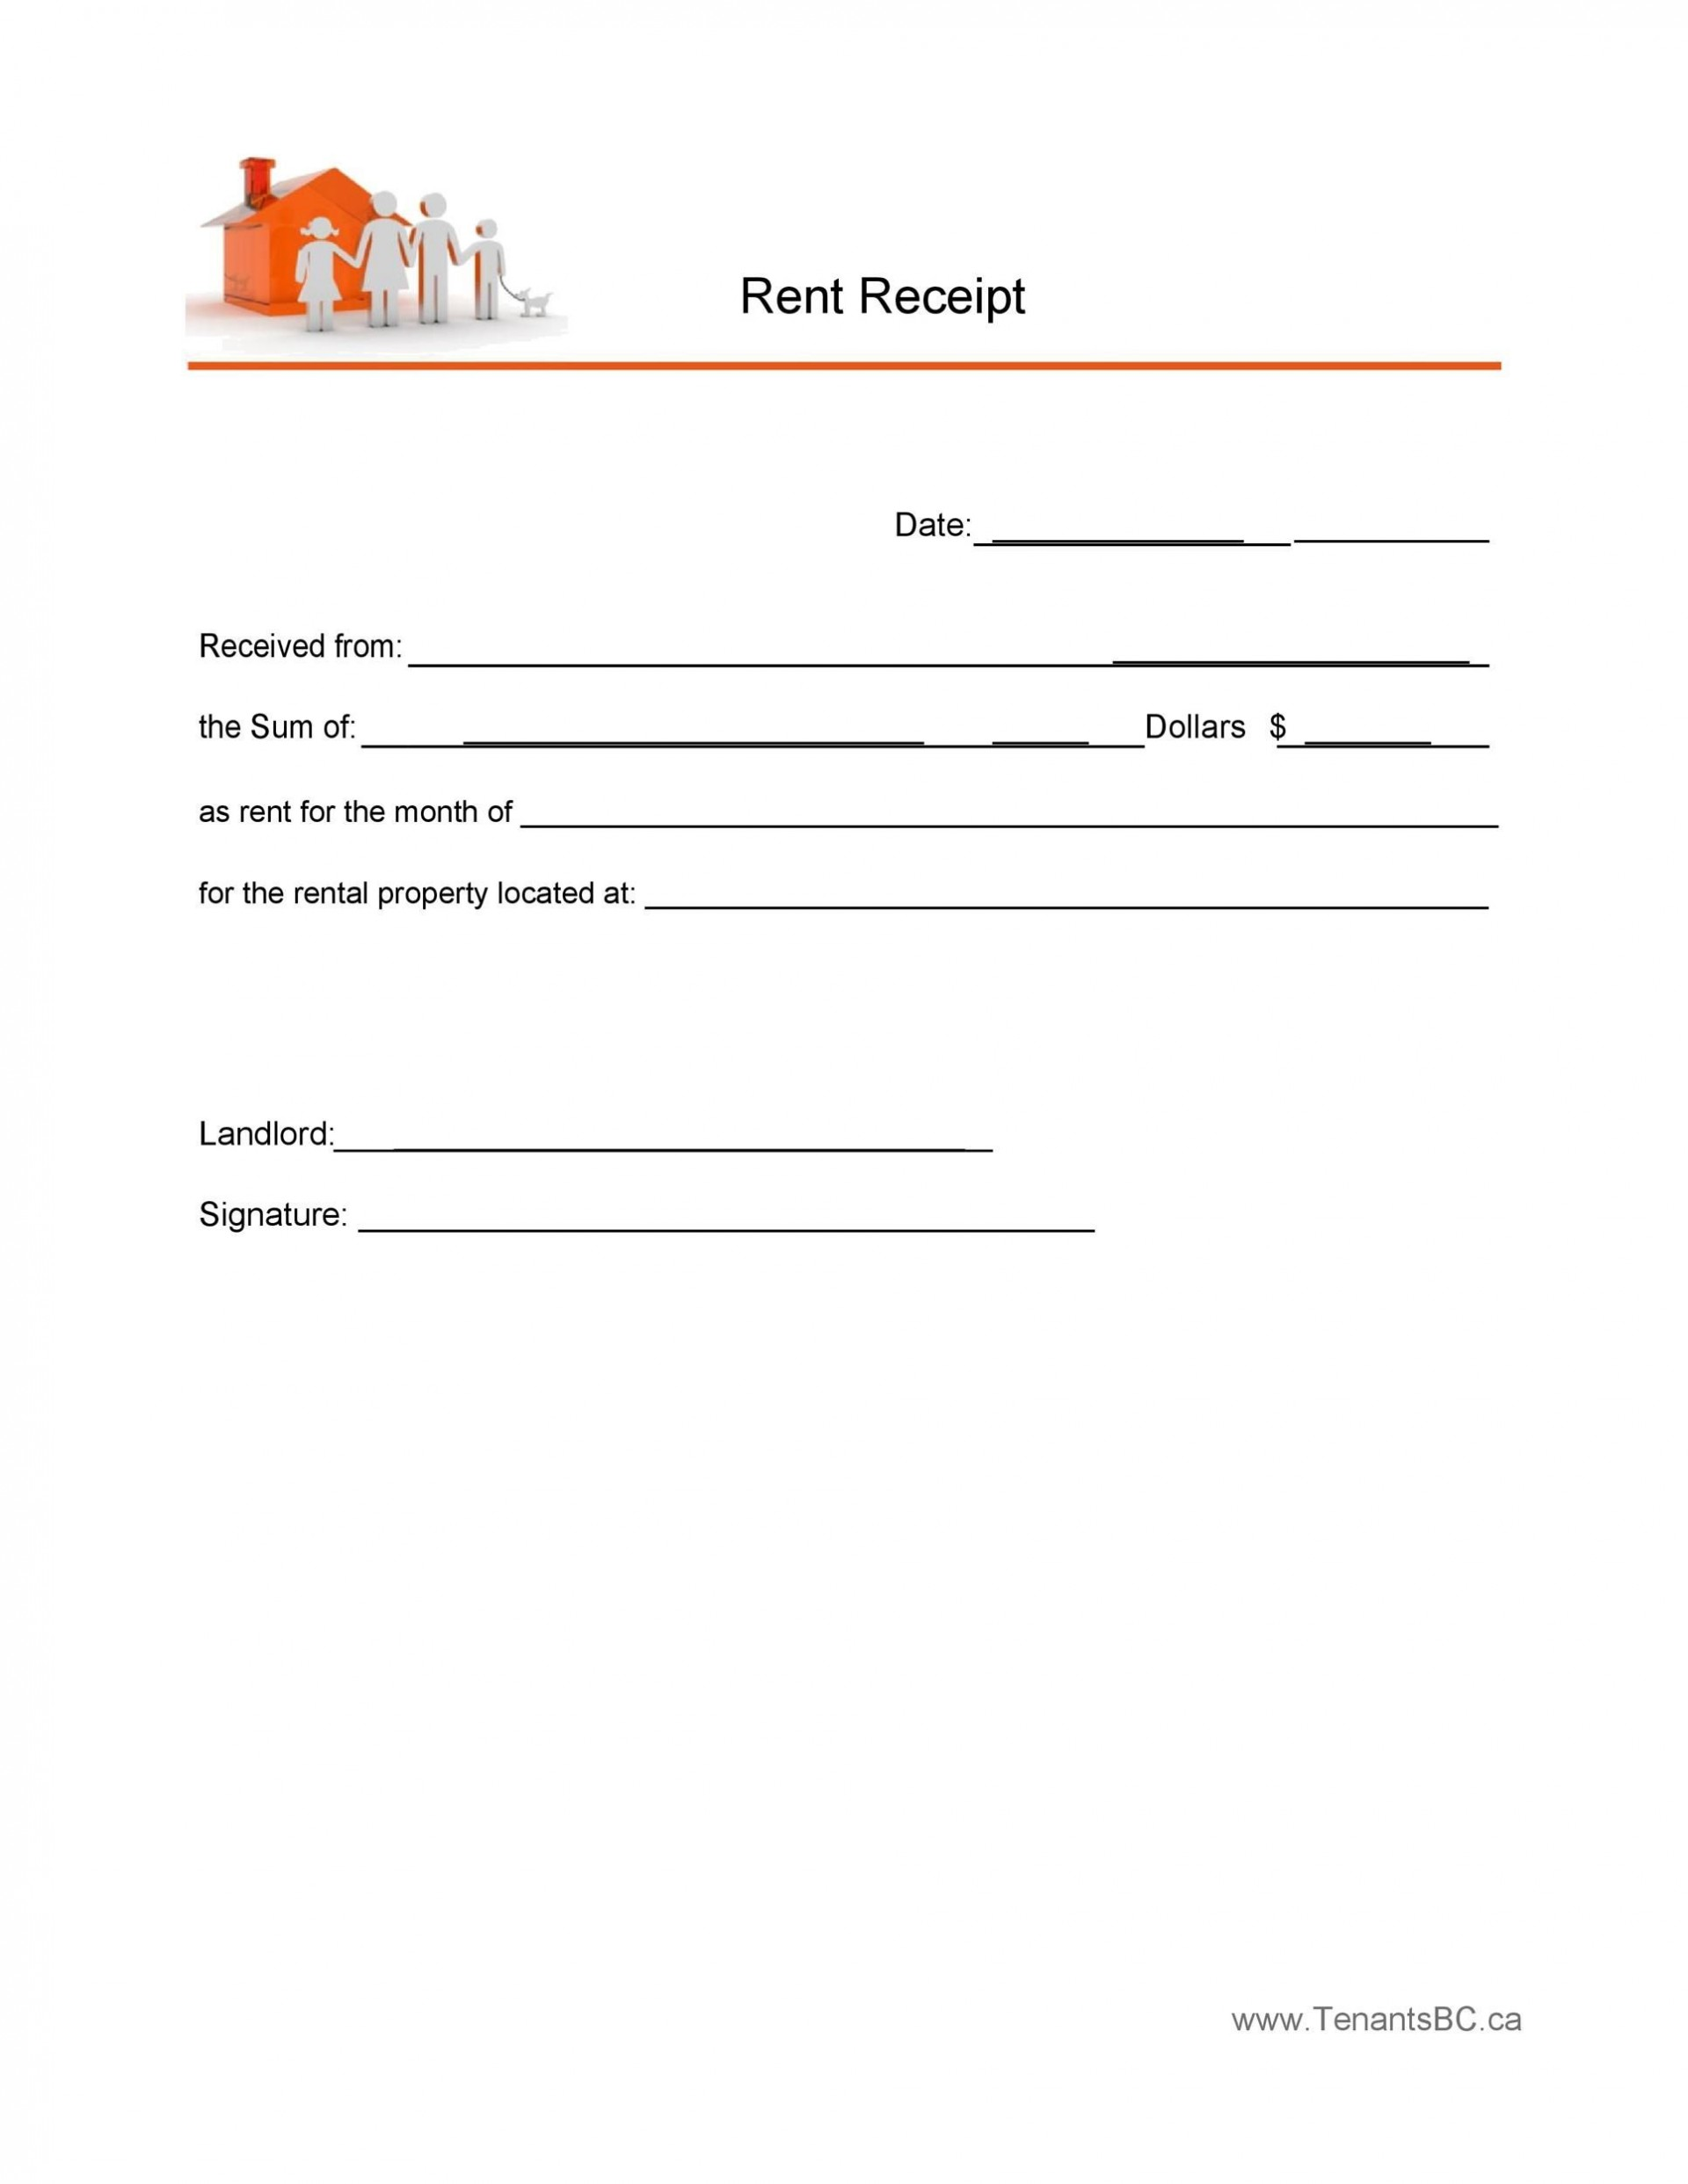 008 Surprising House Rent Receipt Sample Doc Highest Clarity  Template India Bill Format Word Document Pdf Download1920